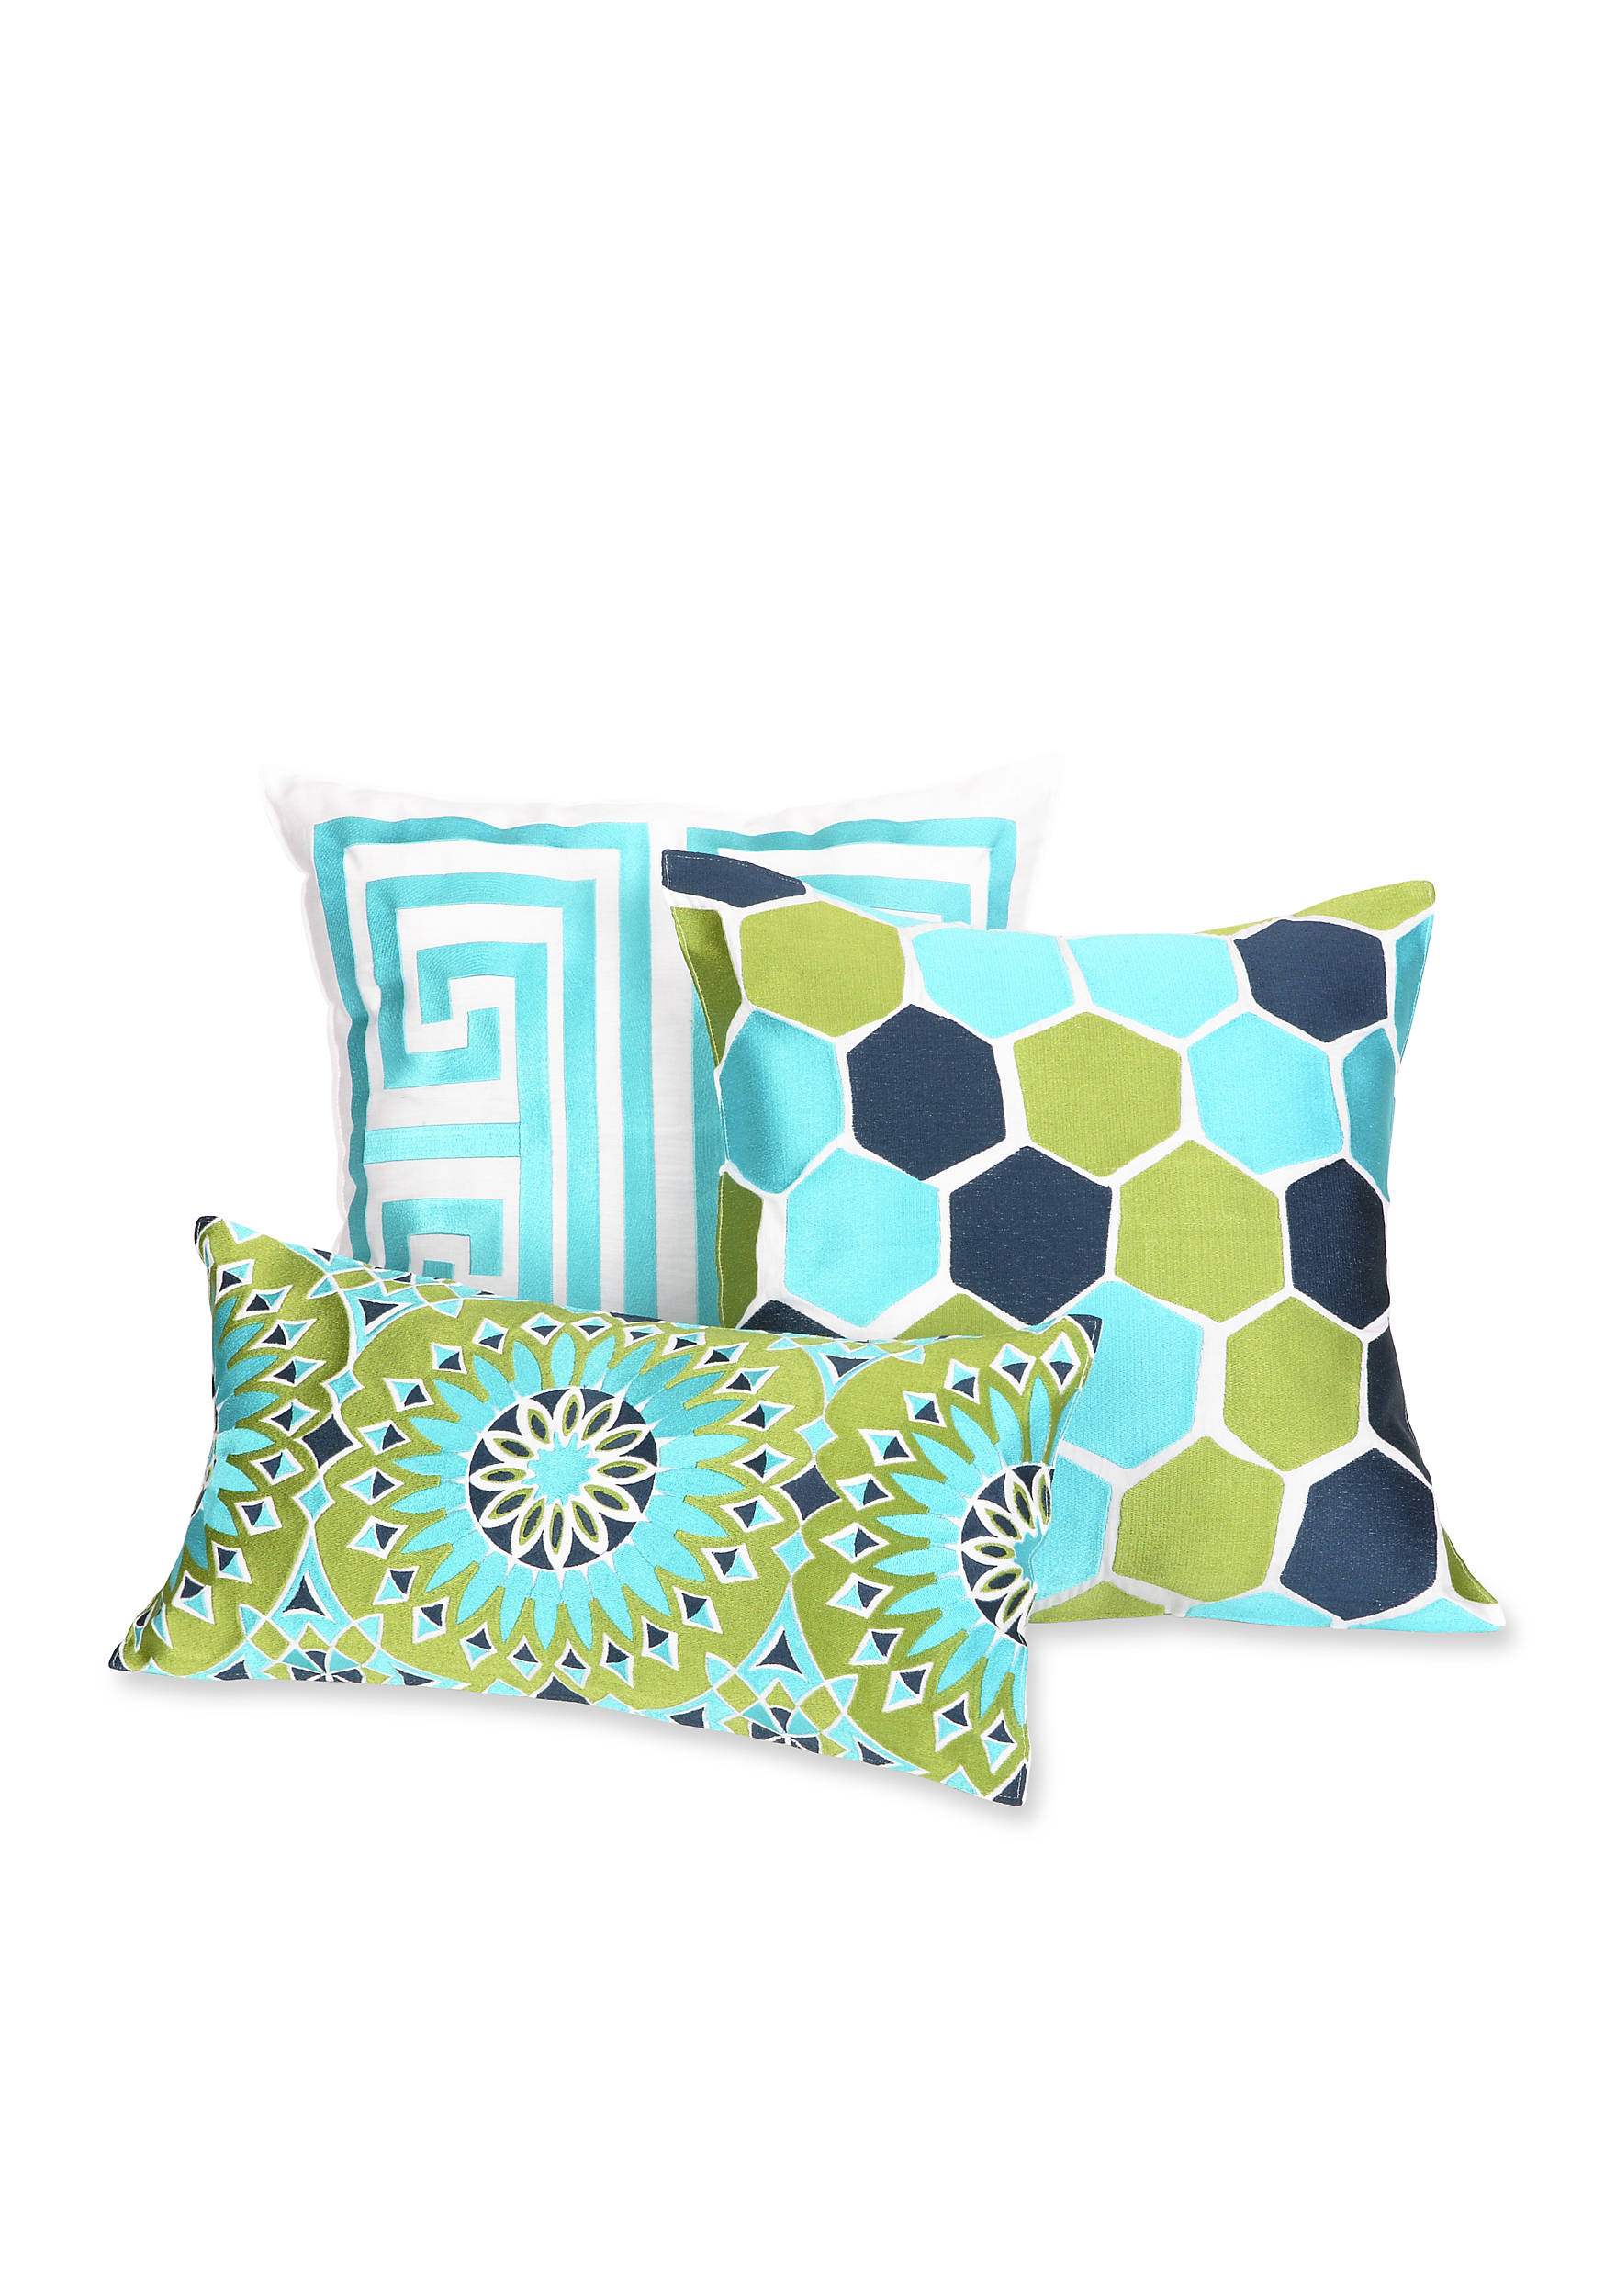 turk pillow pisces punch trina in print pillows